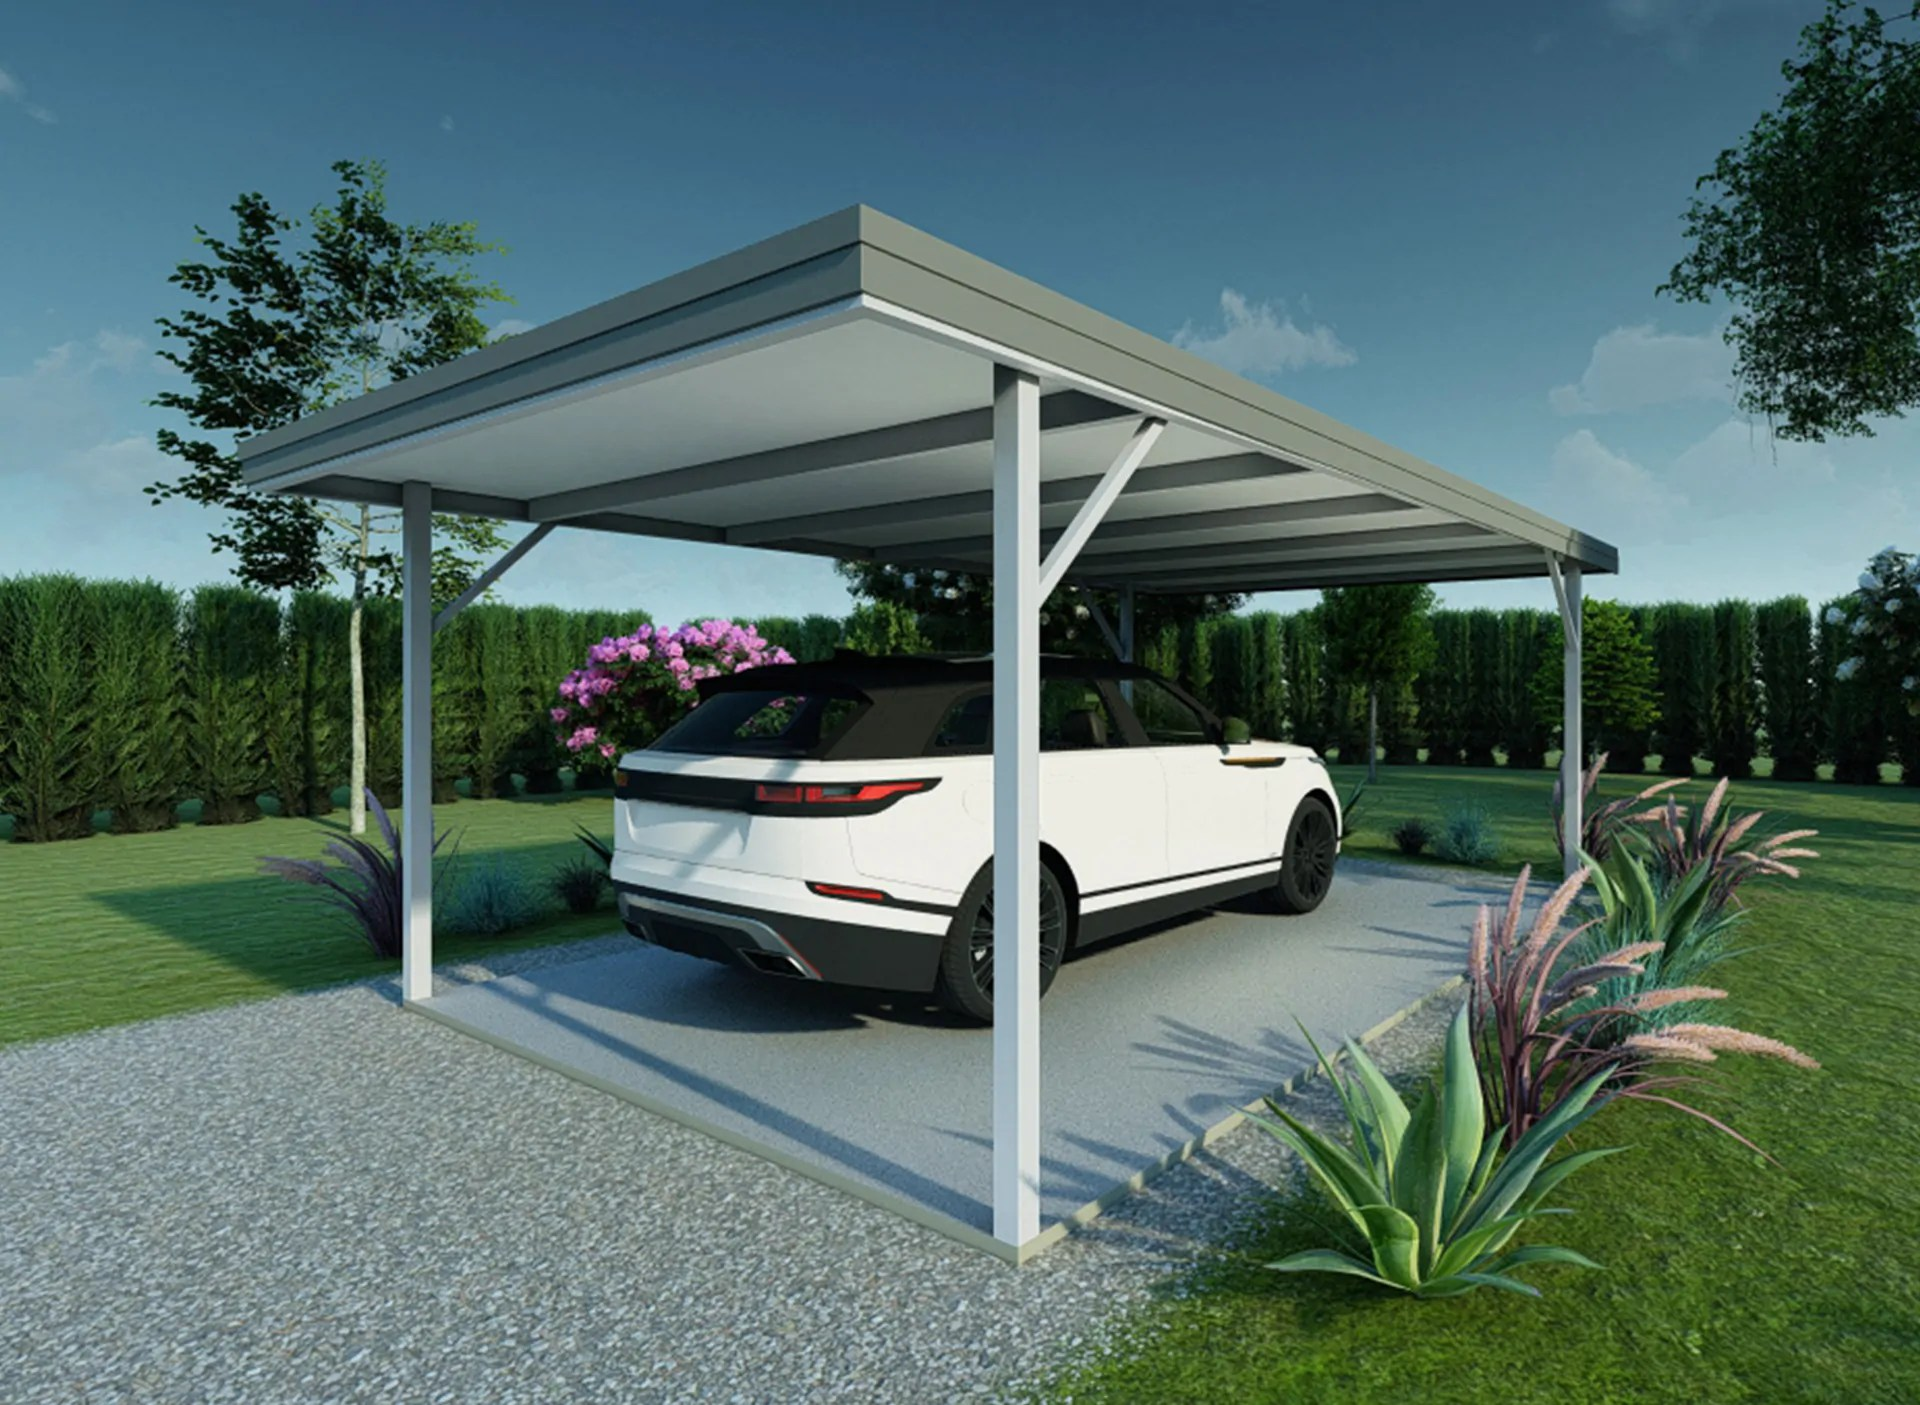 Karpot Quality Steel Carports Nz, Built To Protect Your Vehicle | Kiwispan